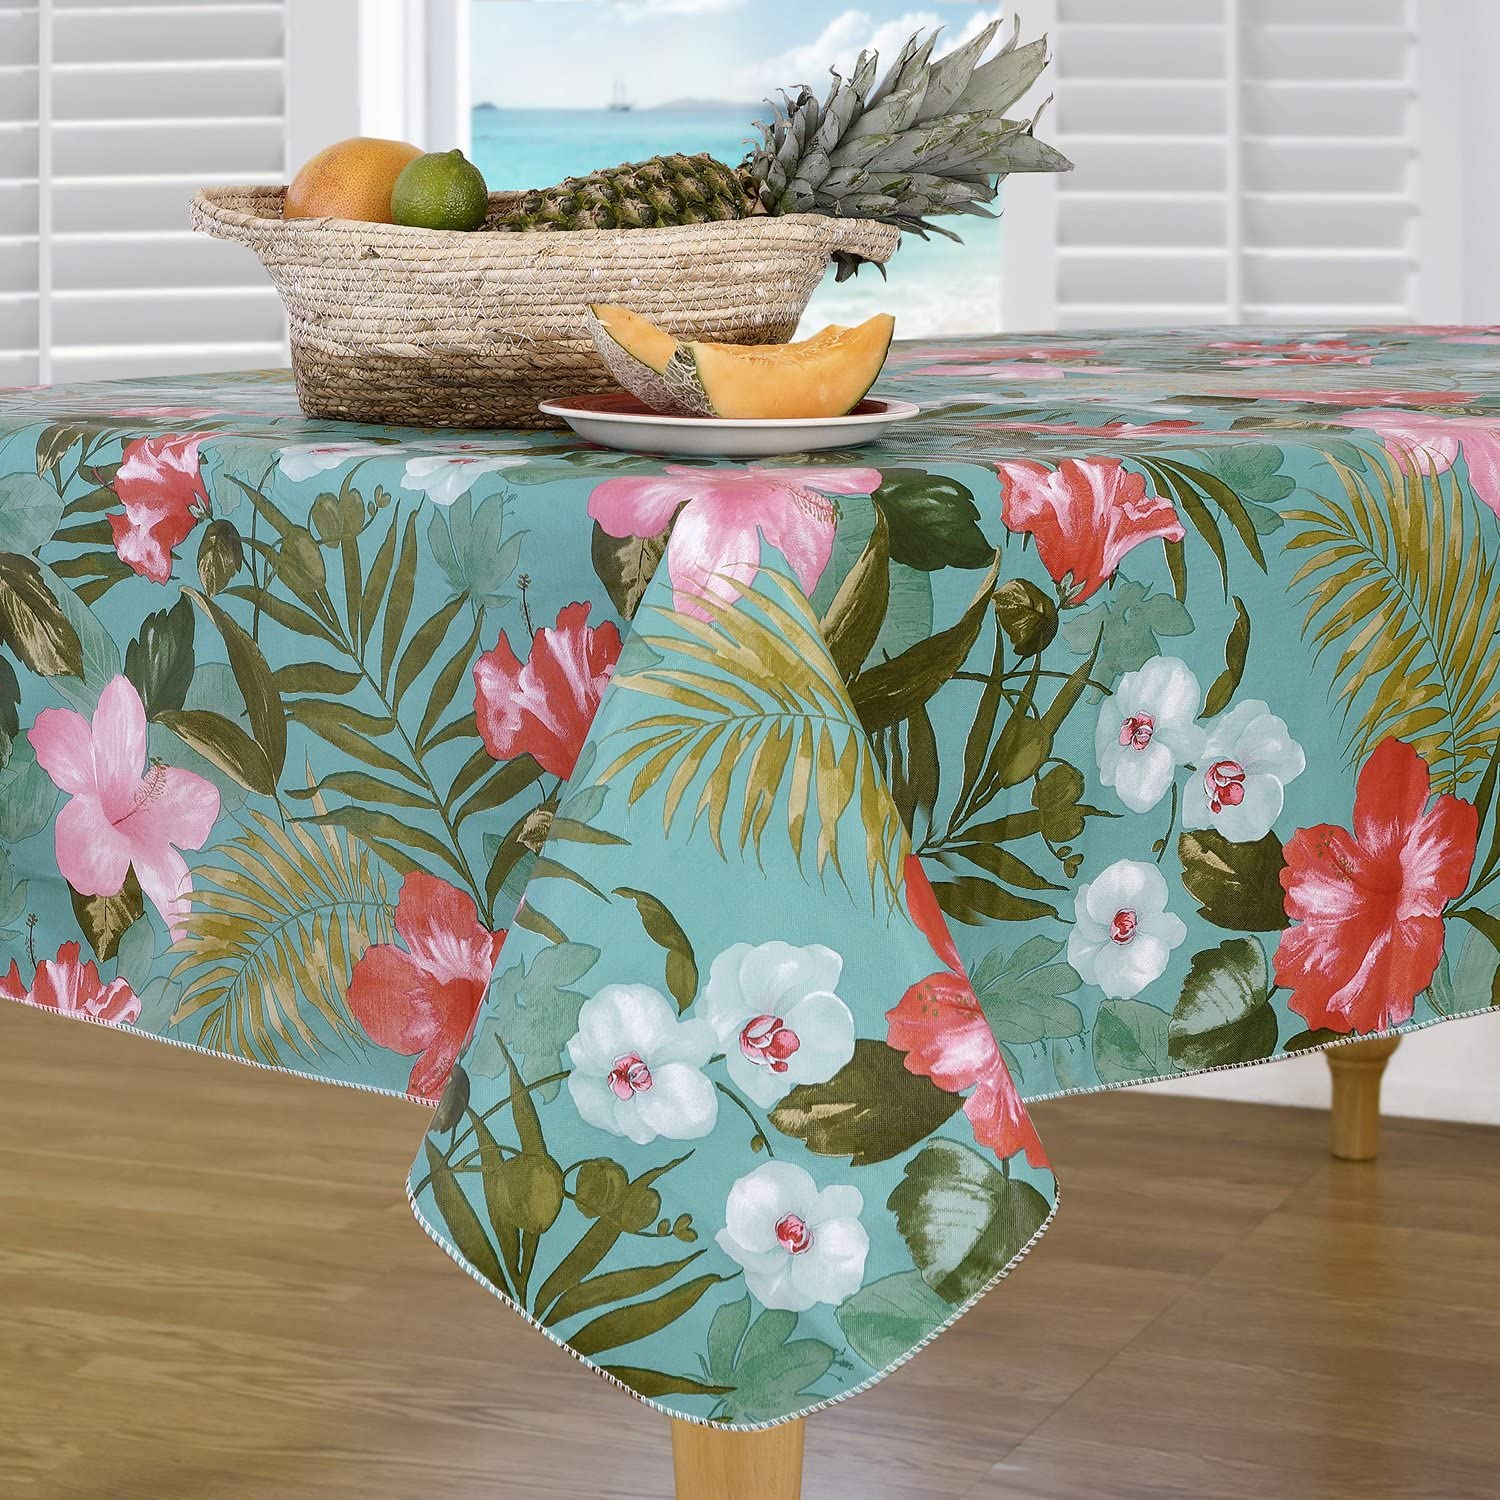 Everyday Luxuries by Newbridge Island Bloom Flannel Backed Indoor Outdoor Vinyl Table Linens, 60-Inch by 84-Inch Oval Tablecloth